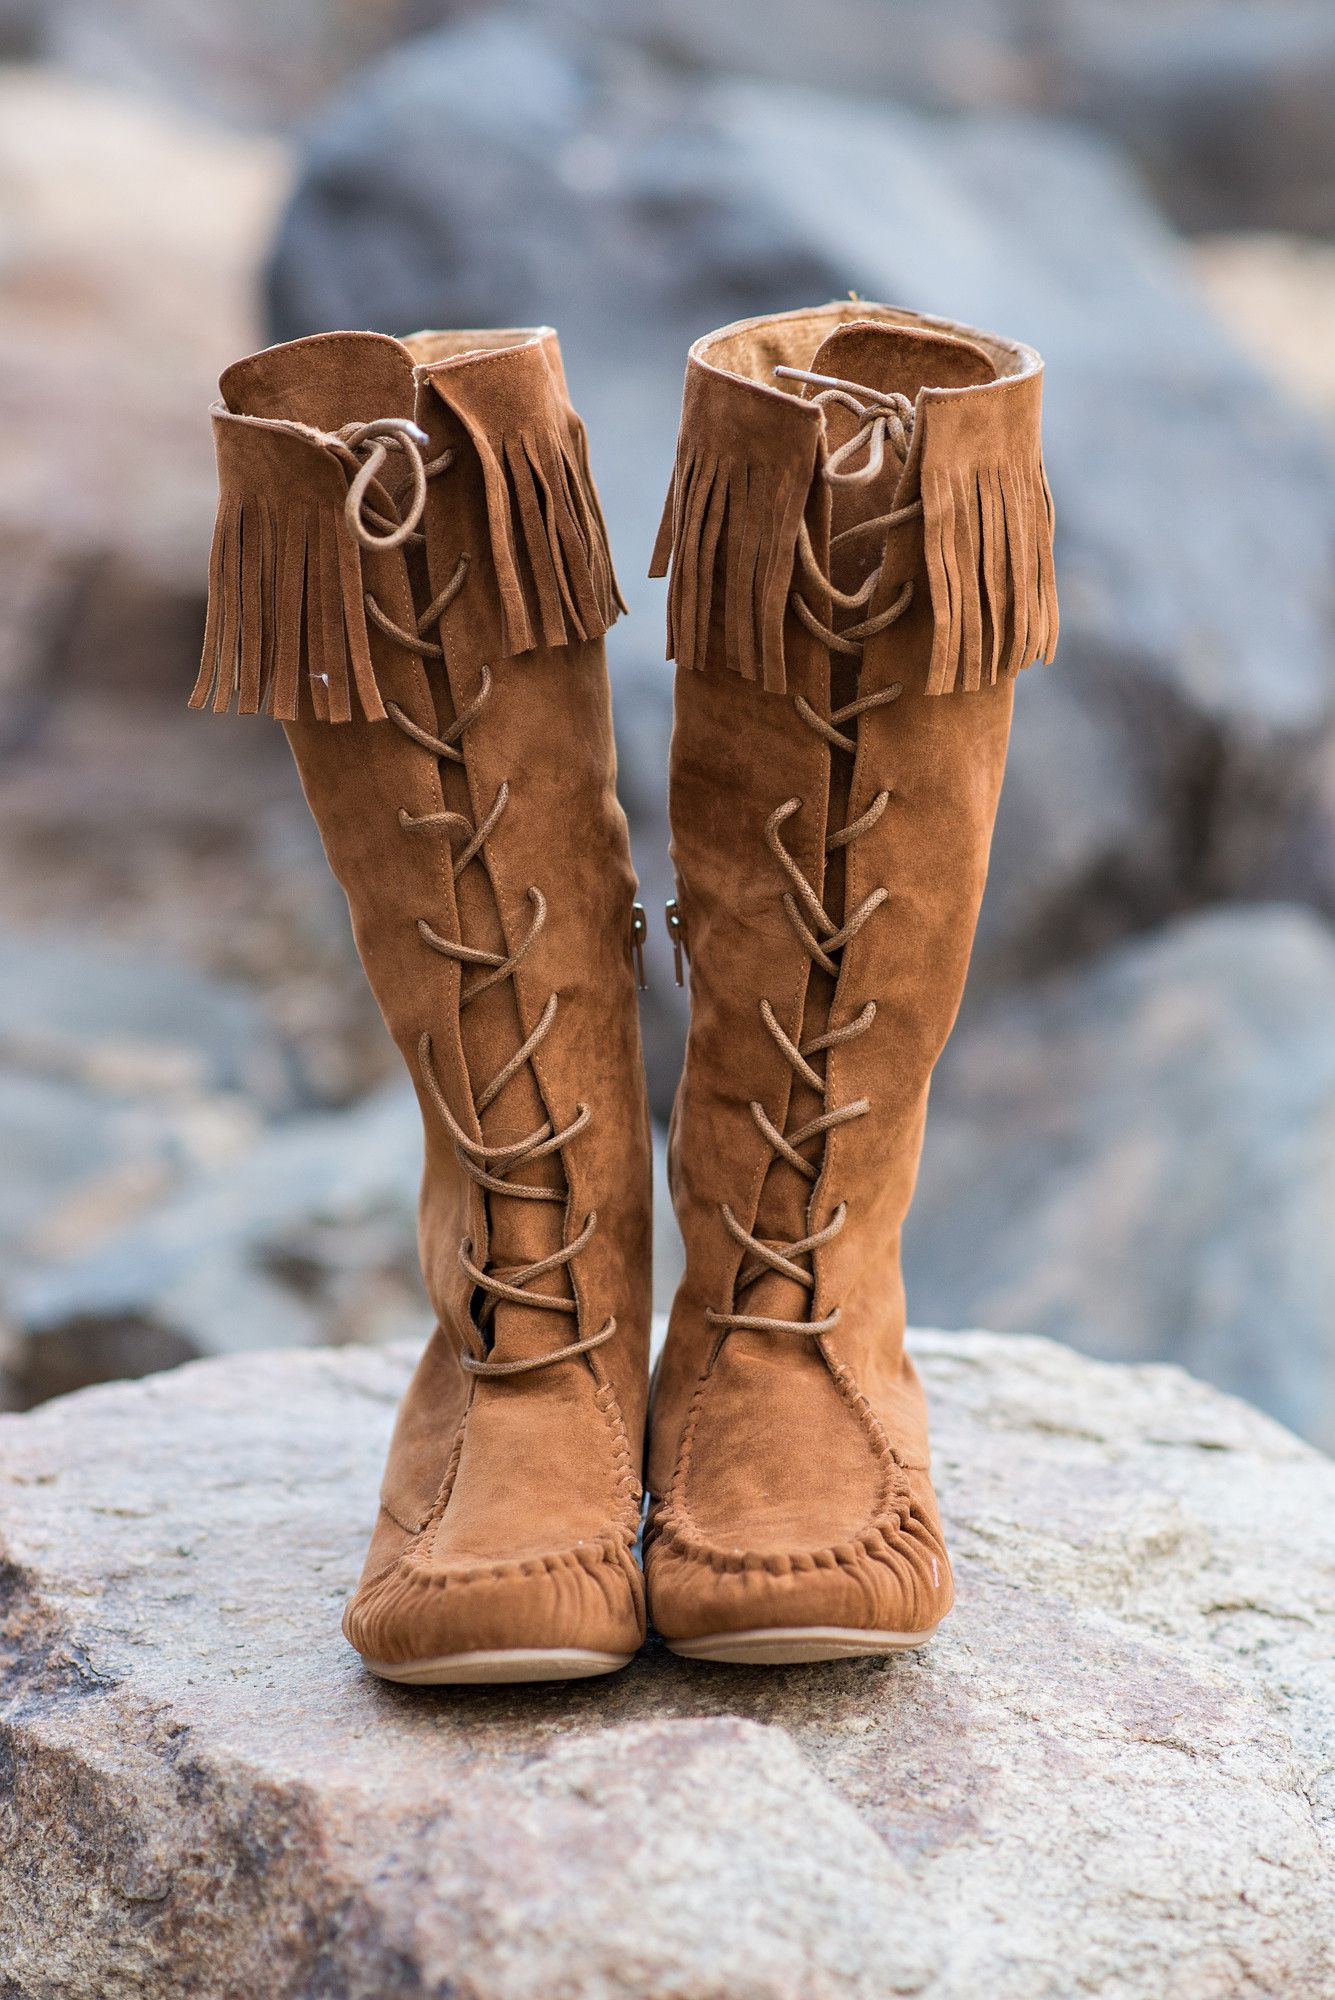 Minnetonka suede leather knee high tall lace up moccasin fringe boots - Bohemian Queen Lace Up Moccasin Boots